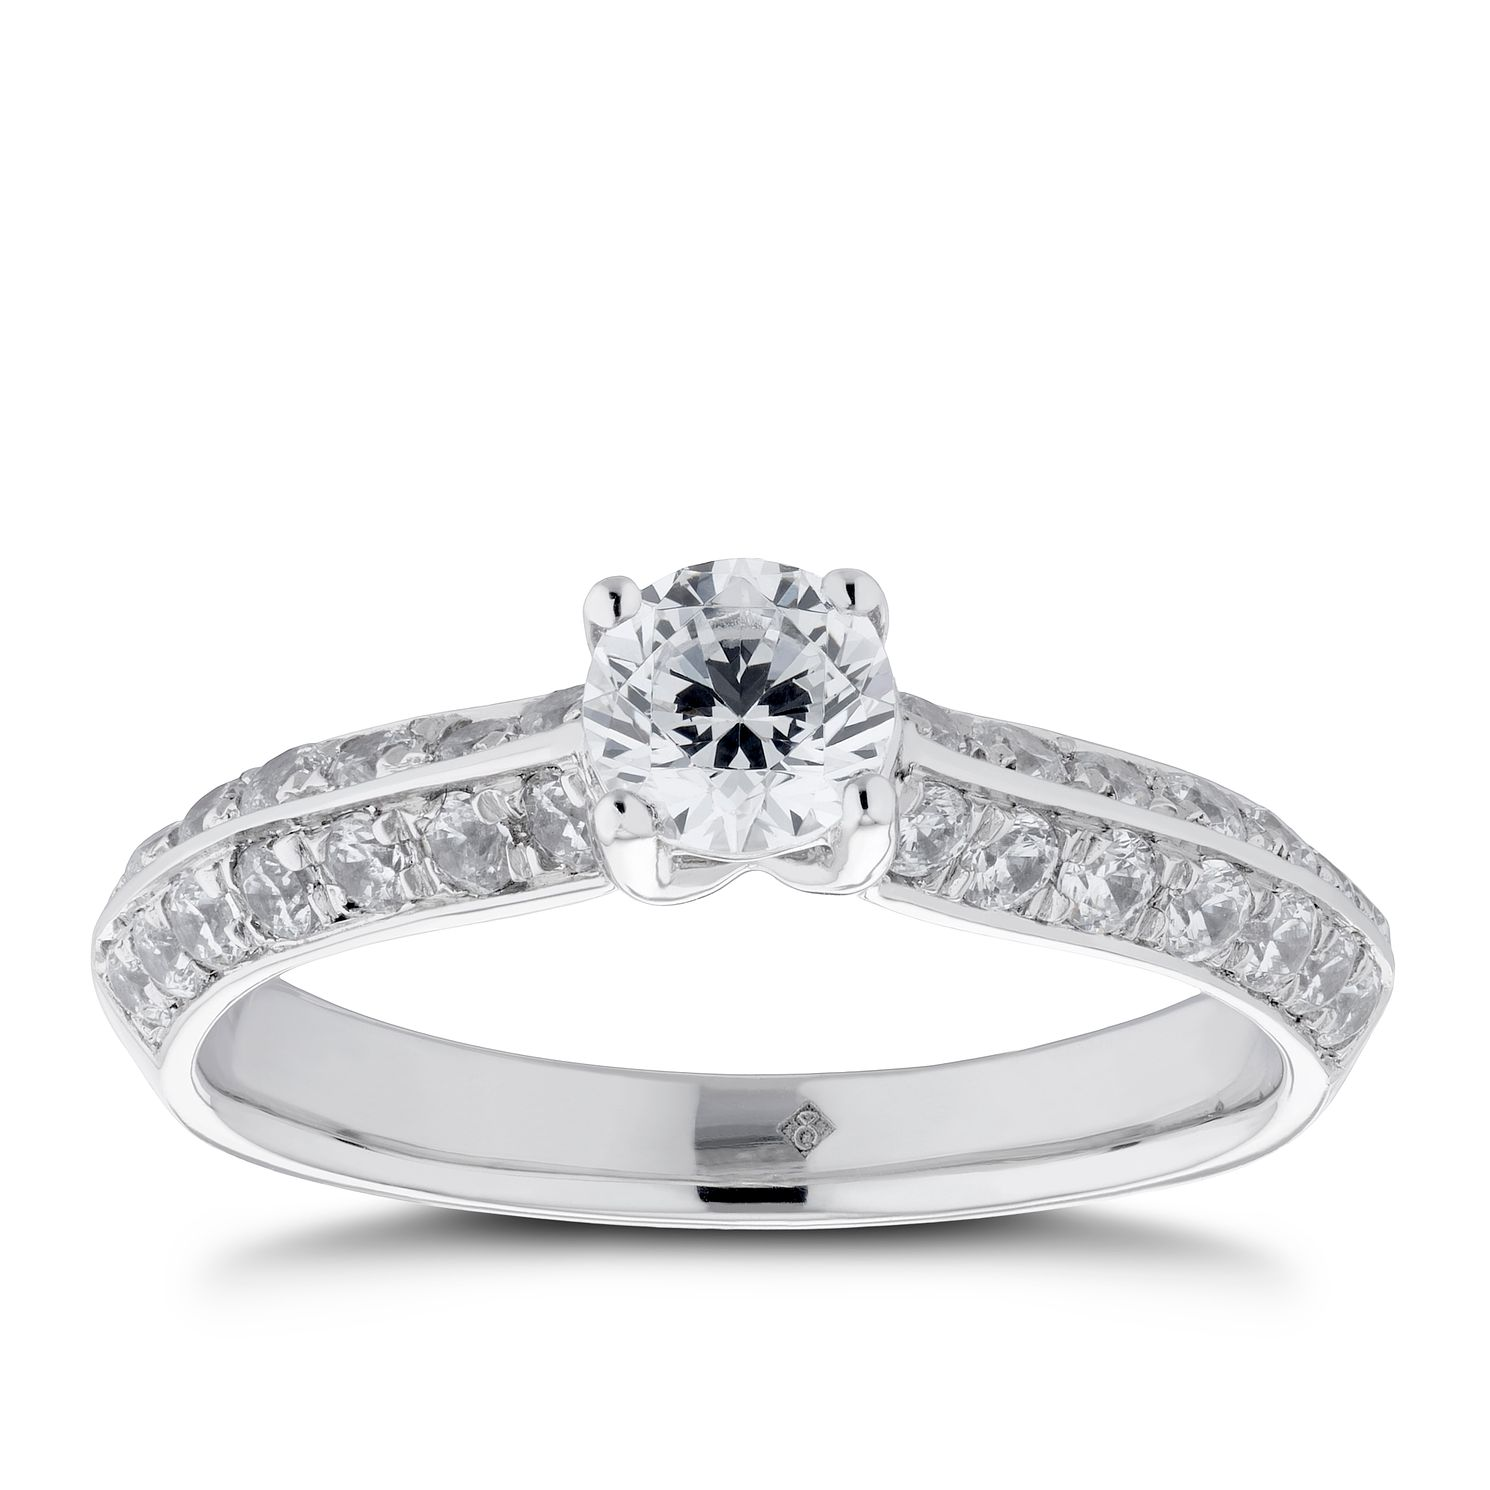 The Diamond Story Platinum 1ct Diamond Solitaire Ring - Product number 5703816